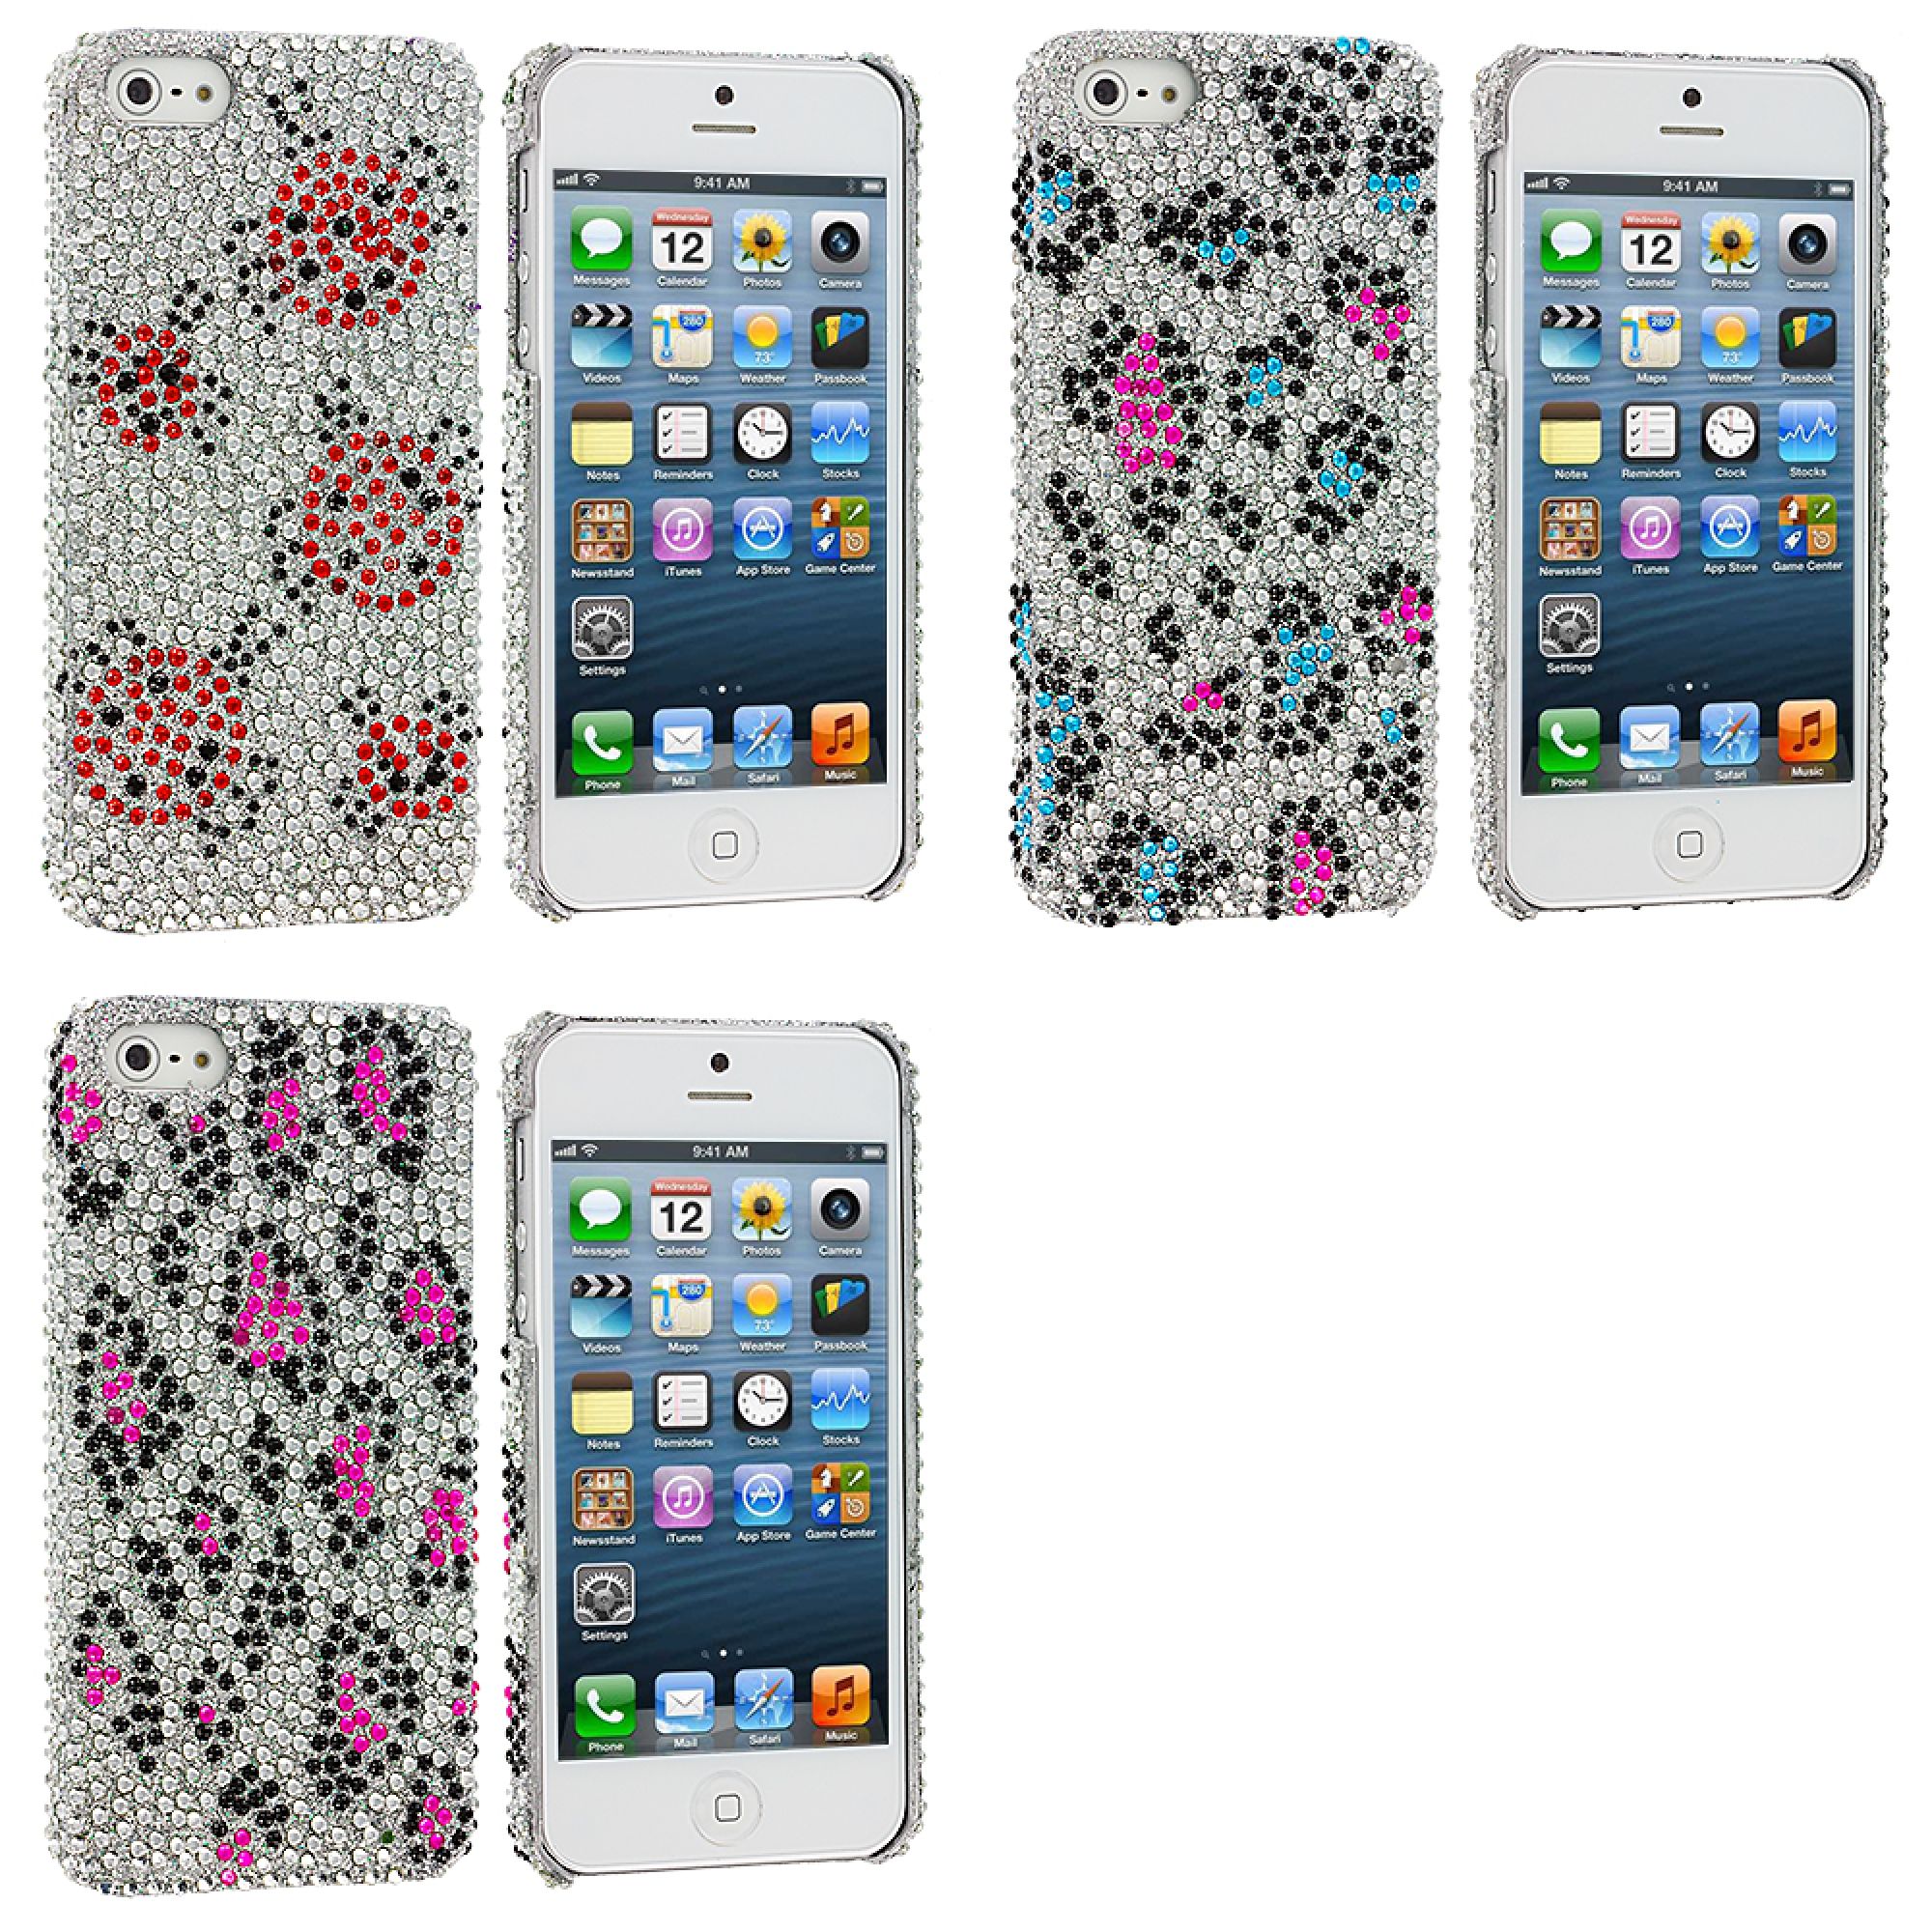 Apple iPhone 5/5S/SE Combo Pack : Lady Bug Bling Rhinestone Case Cover